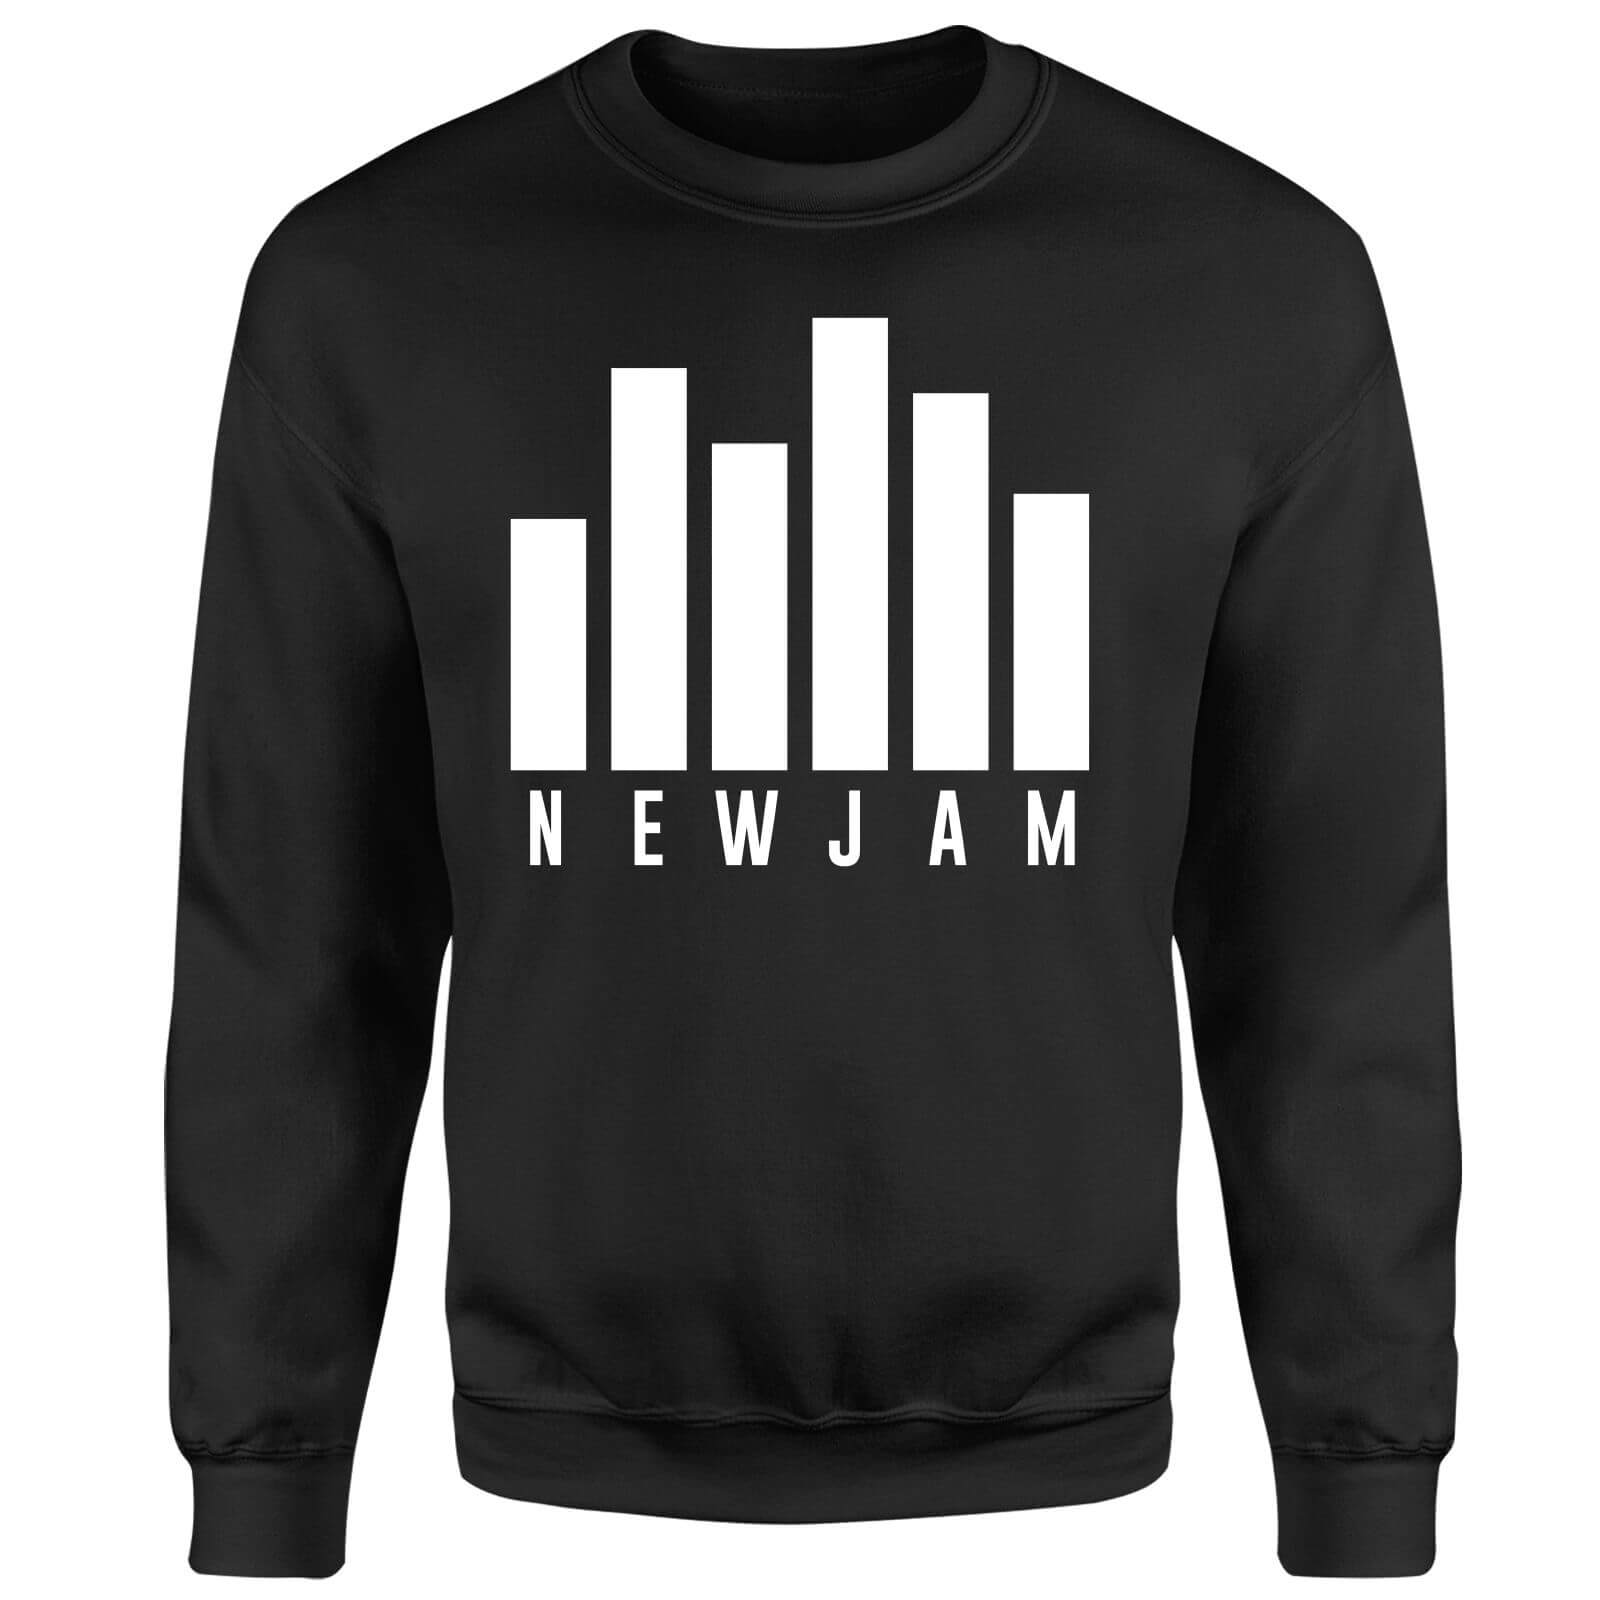 Ranz + Niana New Jam Equalizer Sweatshirt - Black